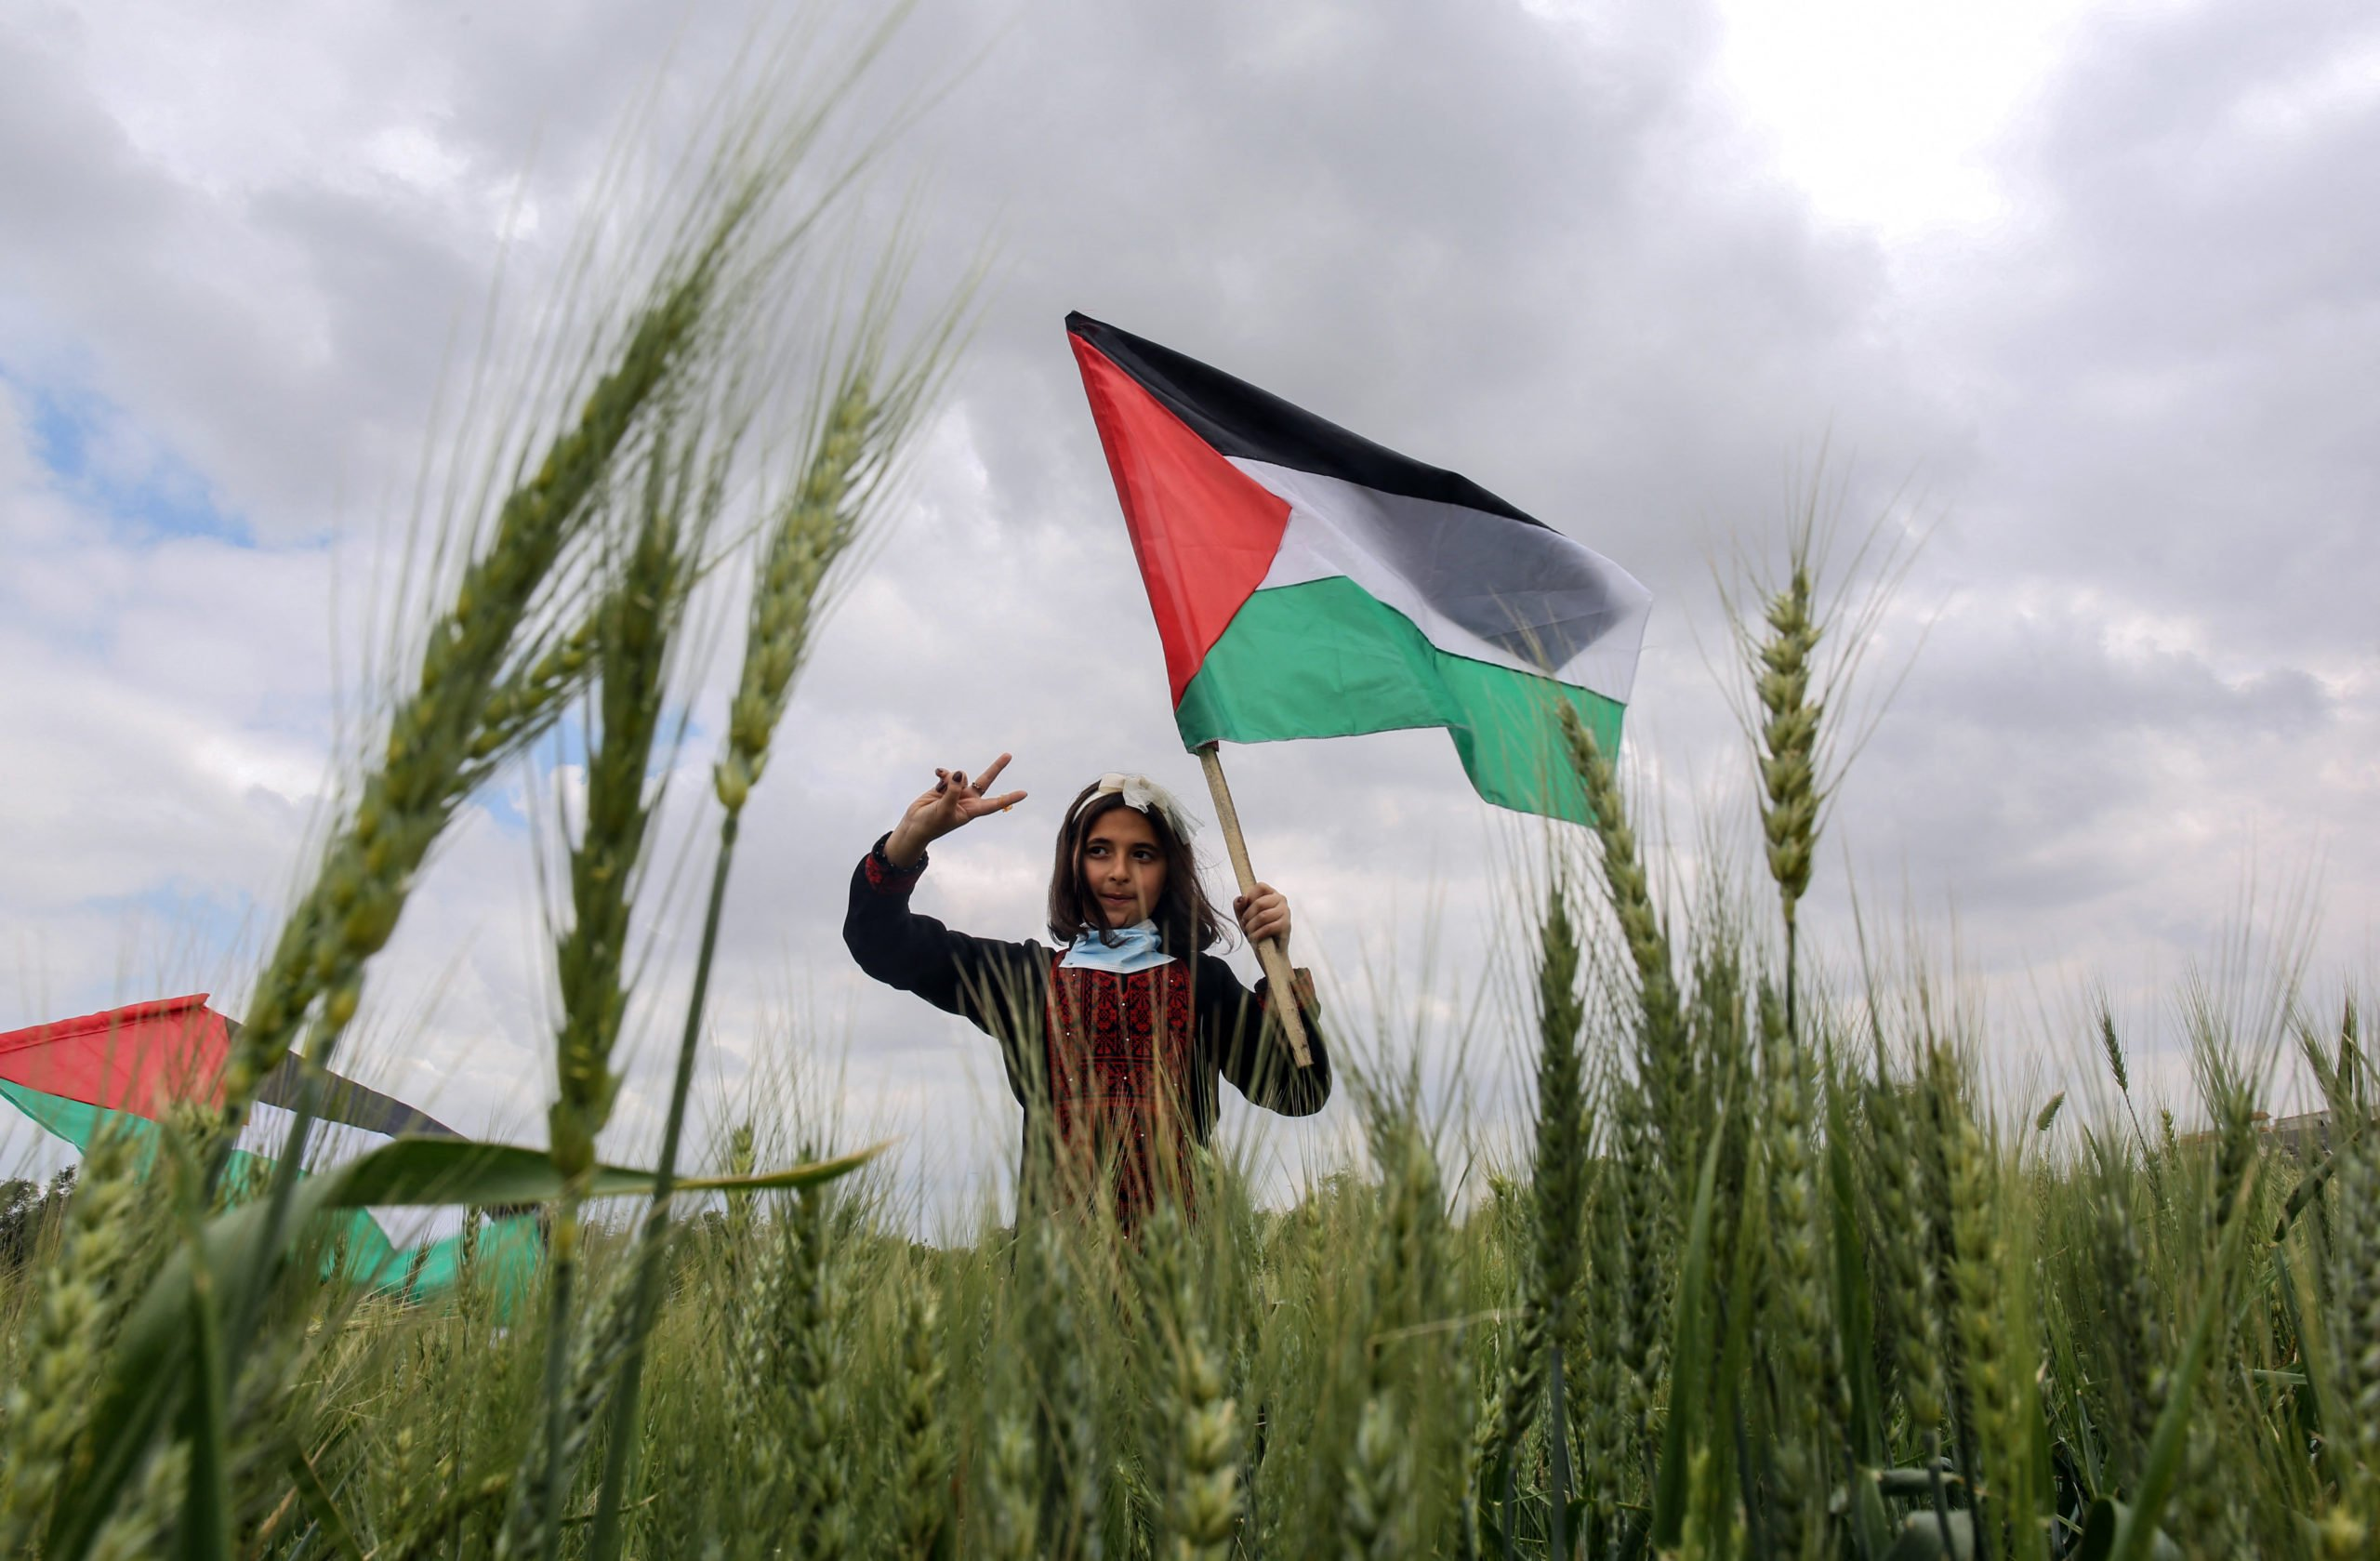 A Palestinian girl waves her national flag during an event marking Land Day near the Israel-Gaza border, east of Khan Yunis town in the Southern Gaza Strip on March 30, 2021. - Palestinians commemorate on March 30 the Land Day's annual demonstrations, marking the deaths of six Arab Israeli protesters at the hands of Israeli police and troops during mass protests in 1976 against plans to confiscate Arab land in the northern Galilee region. (Photo by SAID KHATIB / AFP) (Photo by SAID KHATIB/AFP via Getty Images)